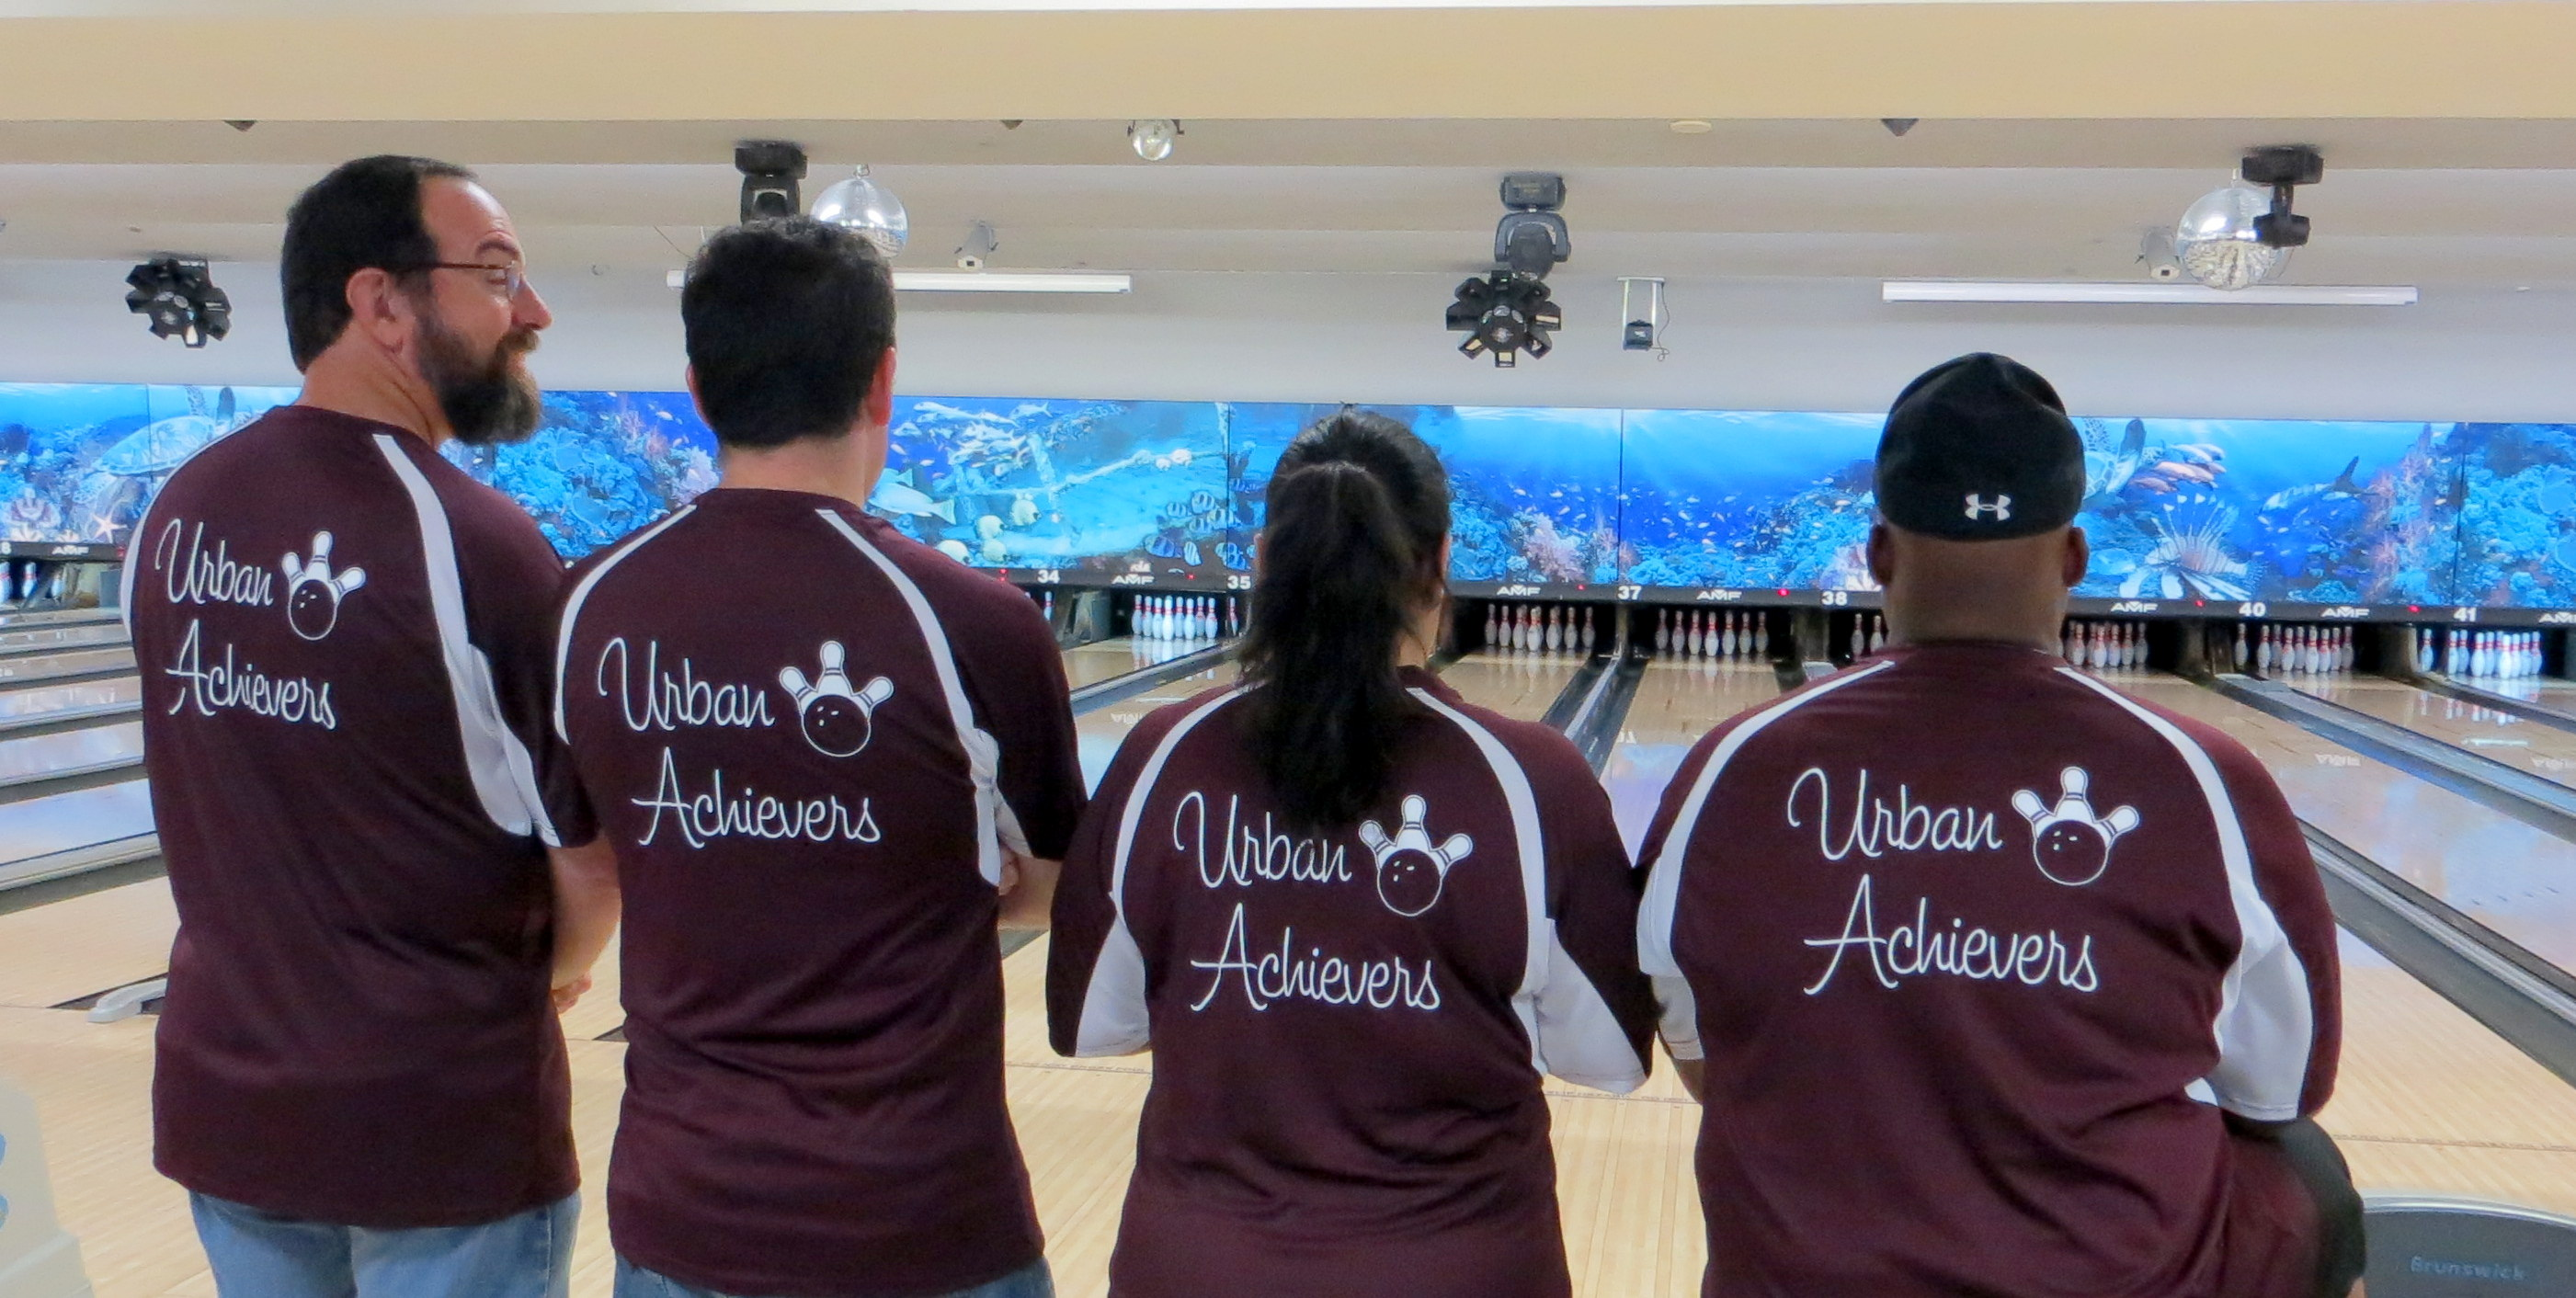 the urban achievers bowling team t shirt photo - Team T Shirt Design Ideas